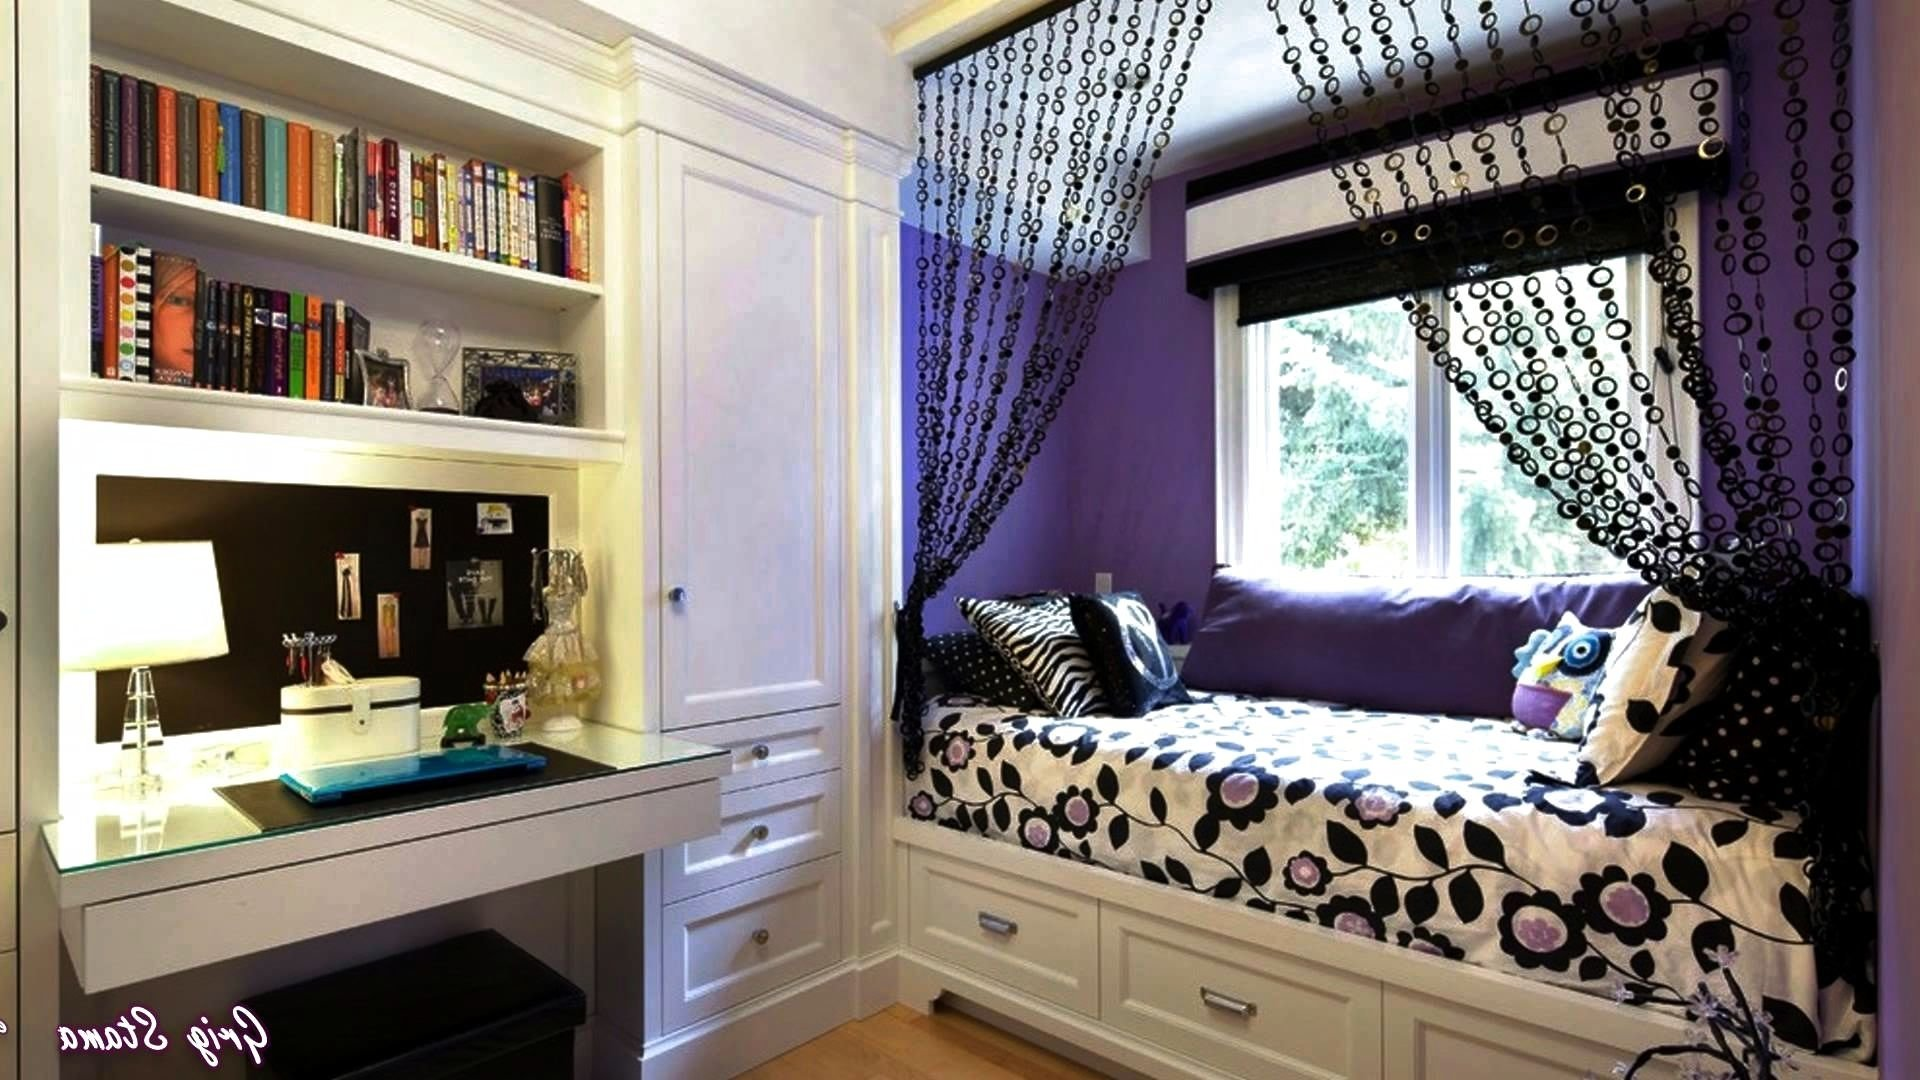 10 Nice Bedroom Decorating Ideas For Teenage Girls room decor ideas for women awesome bedroom endearing diy teens 2021